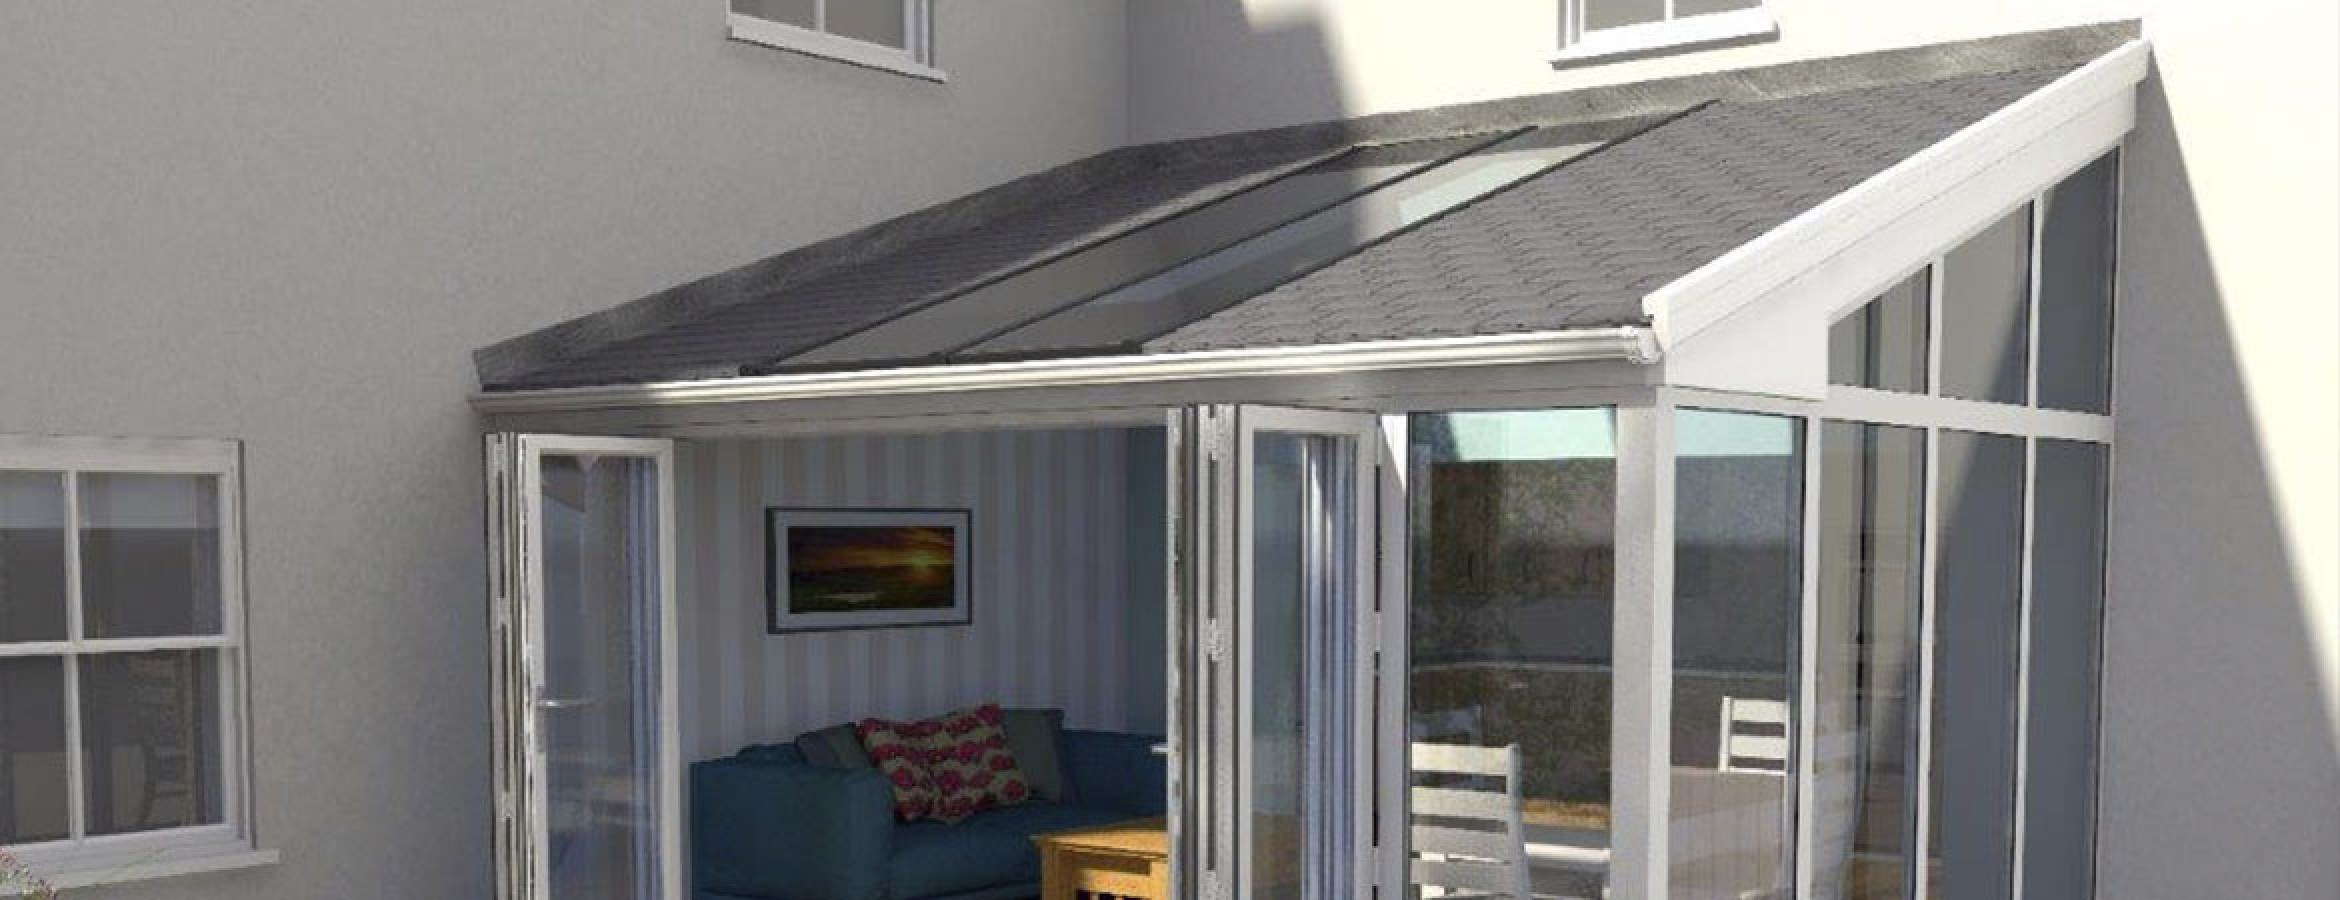 Homeview Conservatories | New Conservatory installation in ...